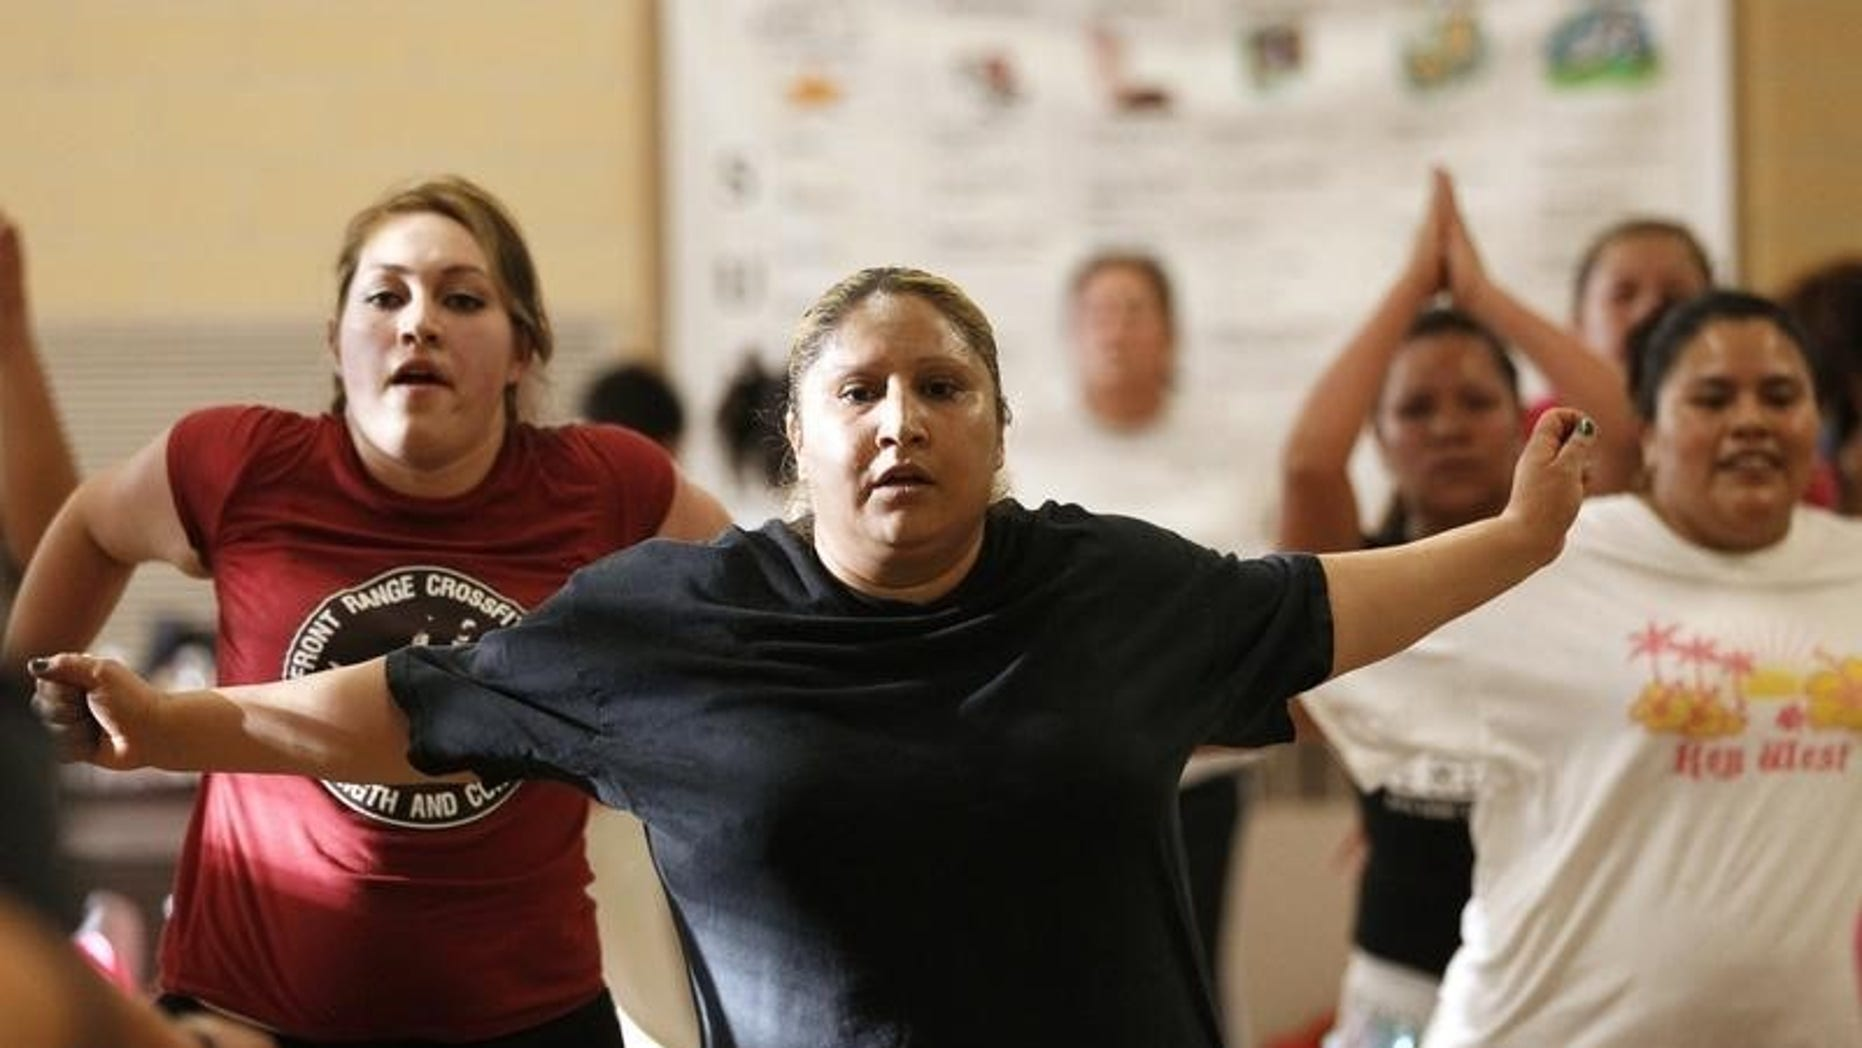 Women participate in a Zumba exercise class in a low-income neighborhood of Denver May 15, 2012. REUTERS/Rick Wilking